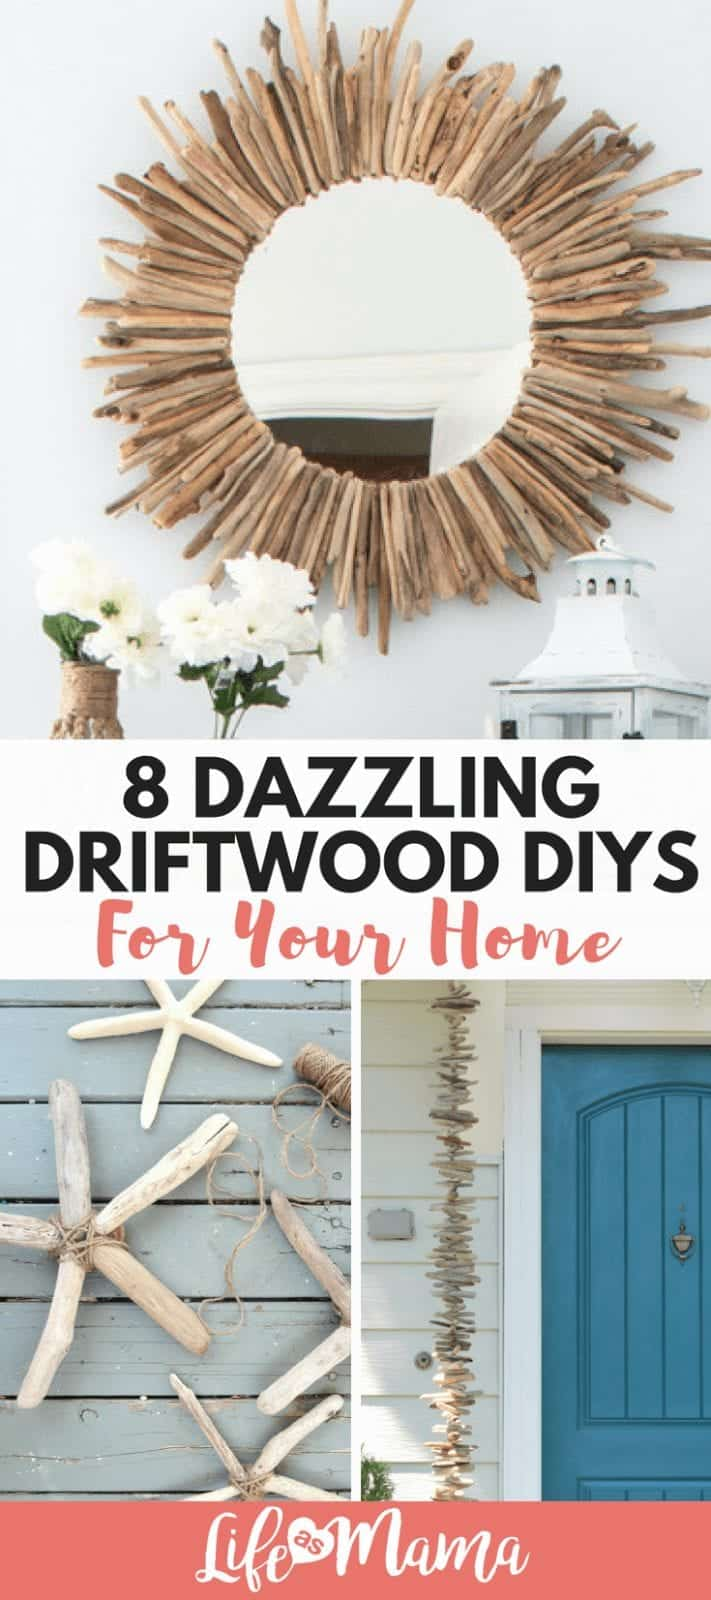 8 Dazzling Driftwood DIYS For Your Home